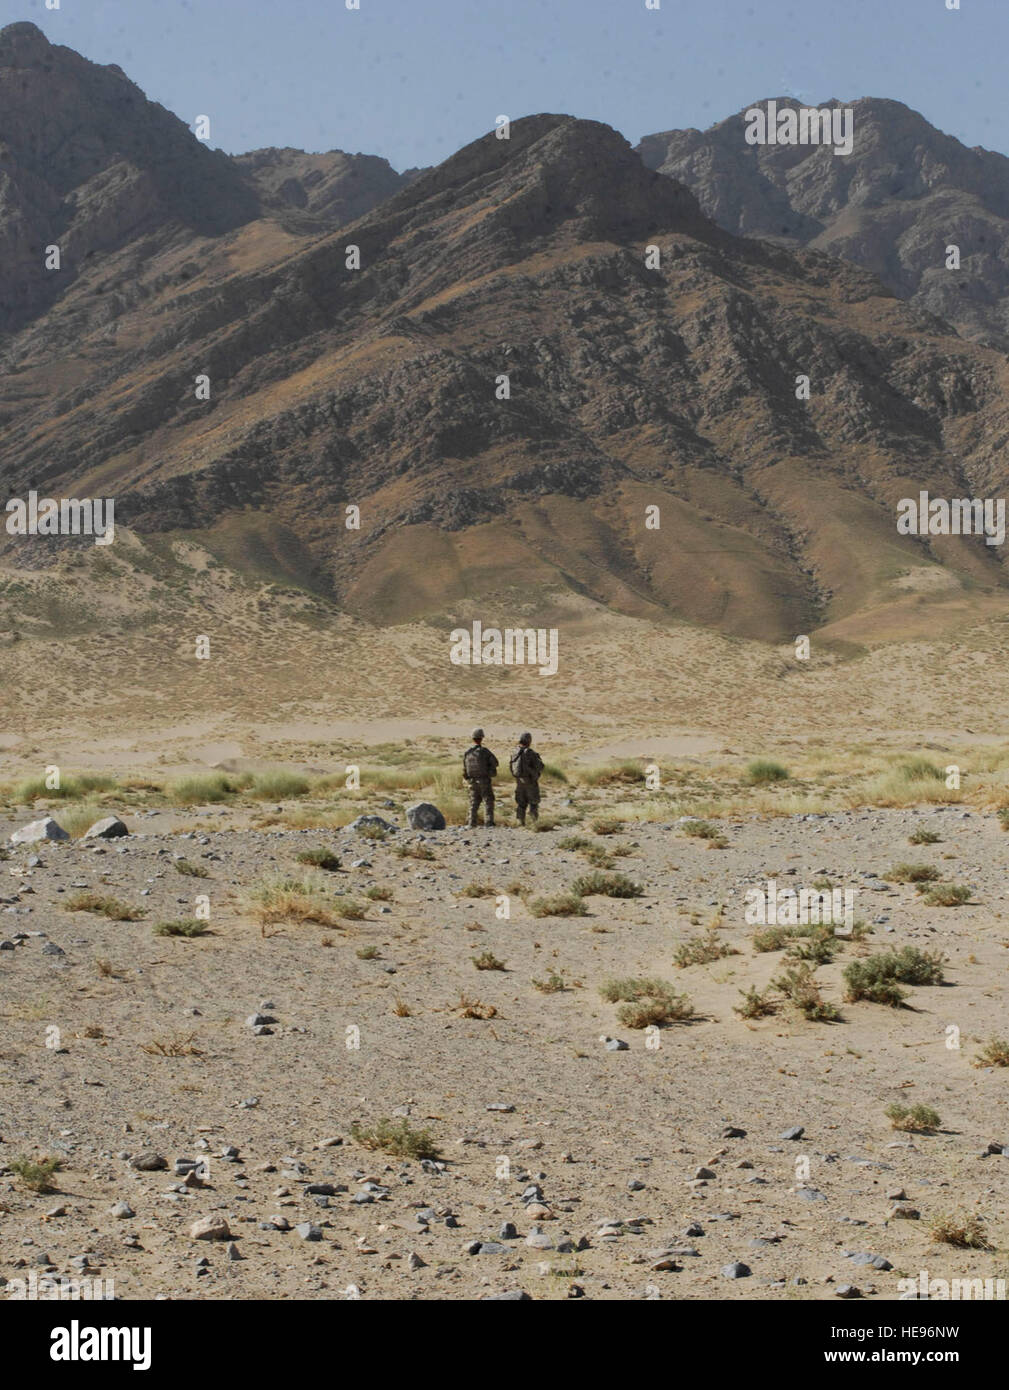 Against the bacdrop of mountains in Afghanistan, two soldiers from Combined Joint Task Force-82 provide security - Stock Image